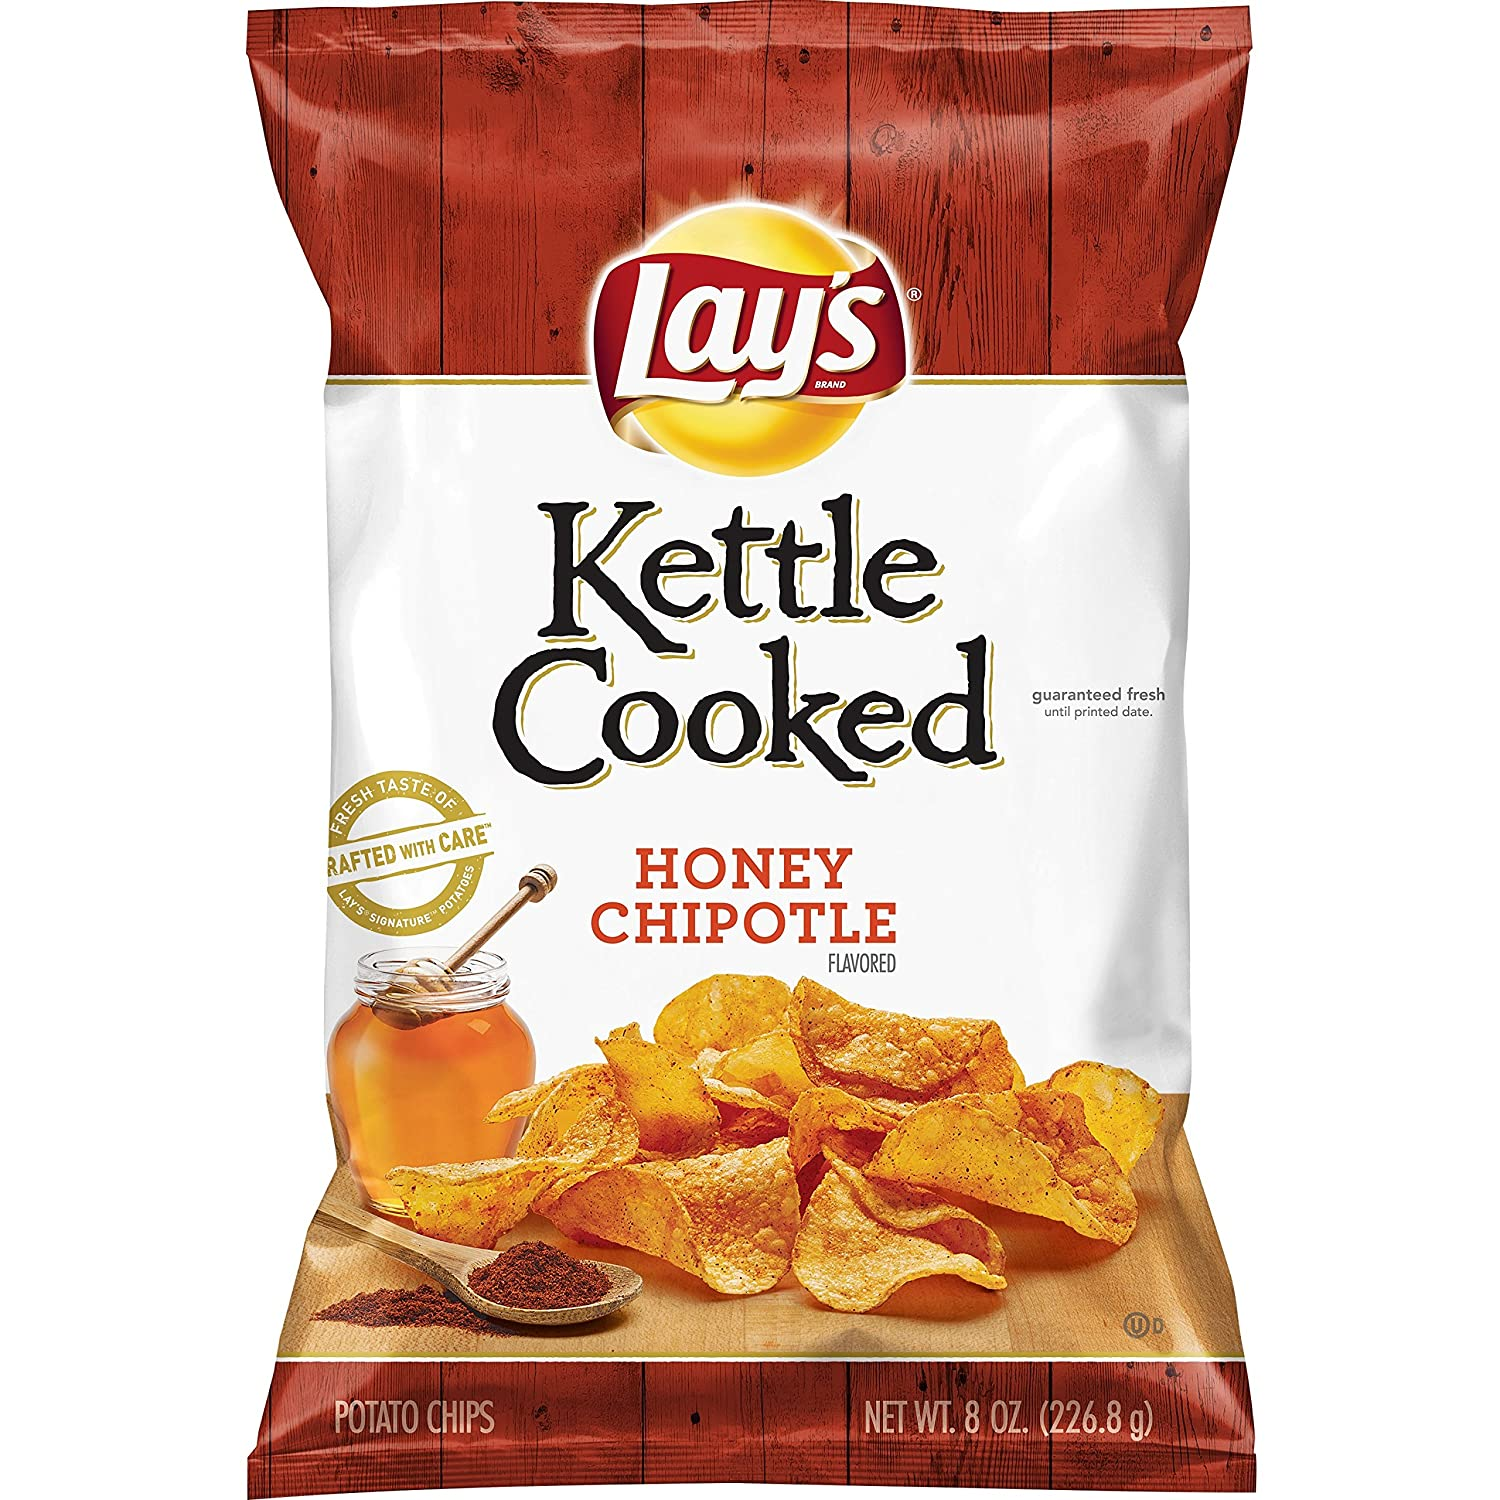 Lay's Kettle Cooked Honey Chipotle Flavored Potato Chips, 8 Ounce